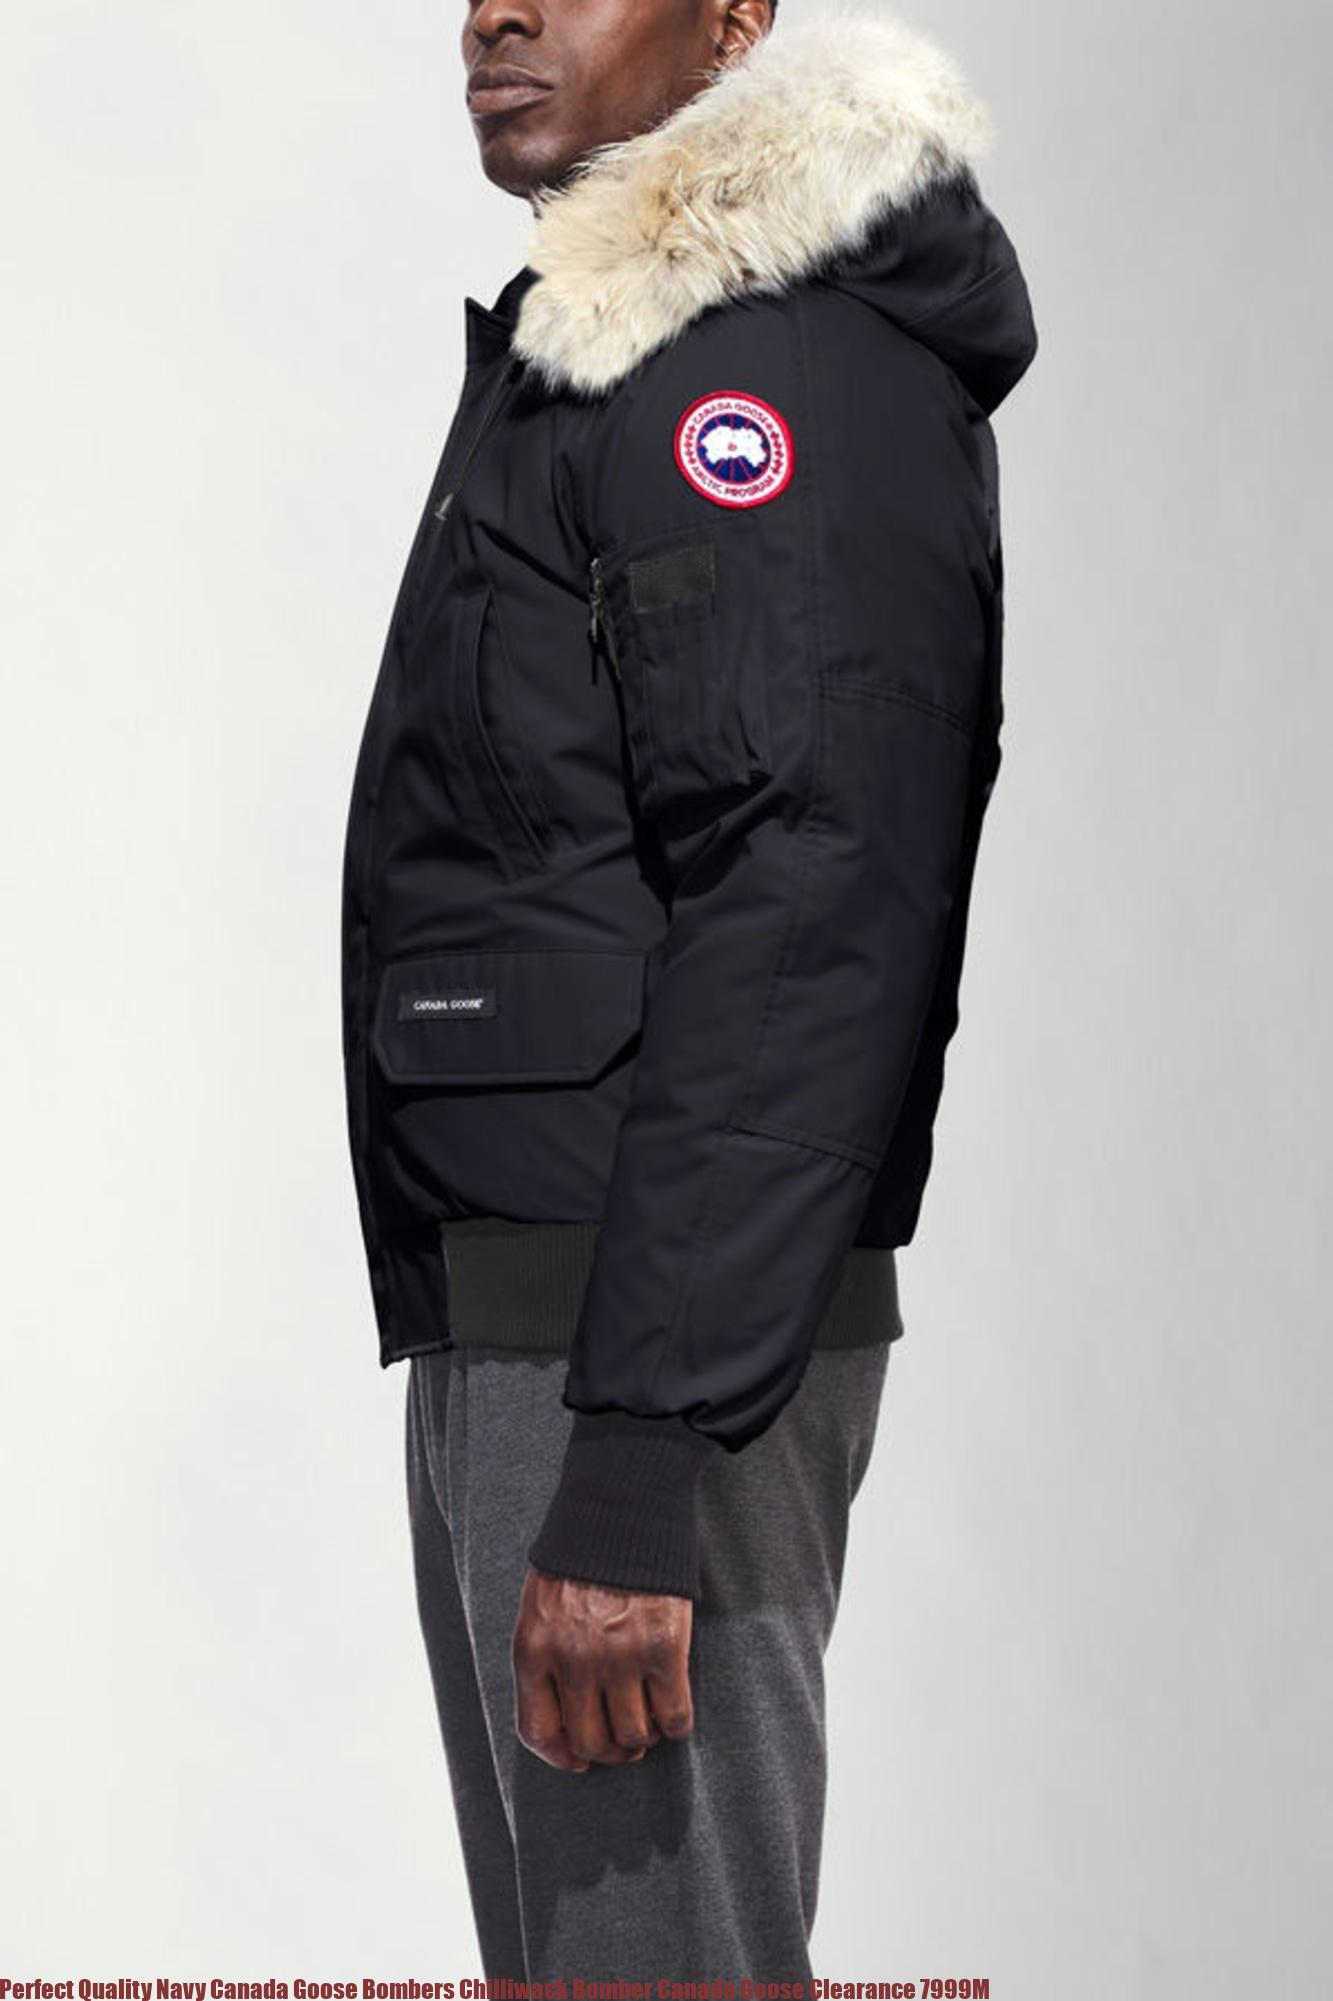 ec0c1fc9e94 Perfect Quality Navy Canada Goose Bombers Chilliwack Bomber Canada Goose  Clearance 7999M